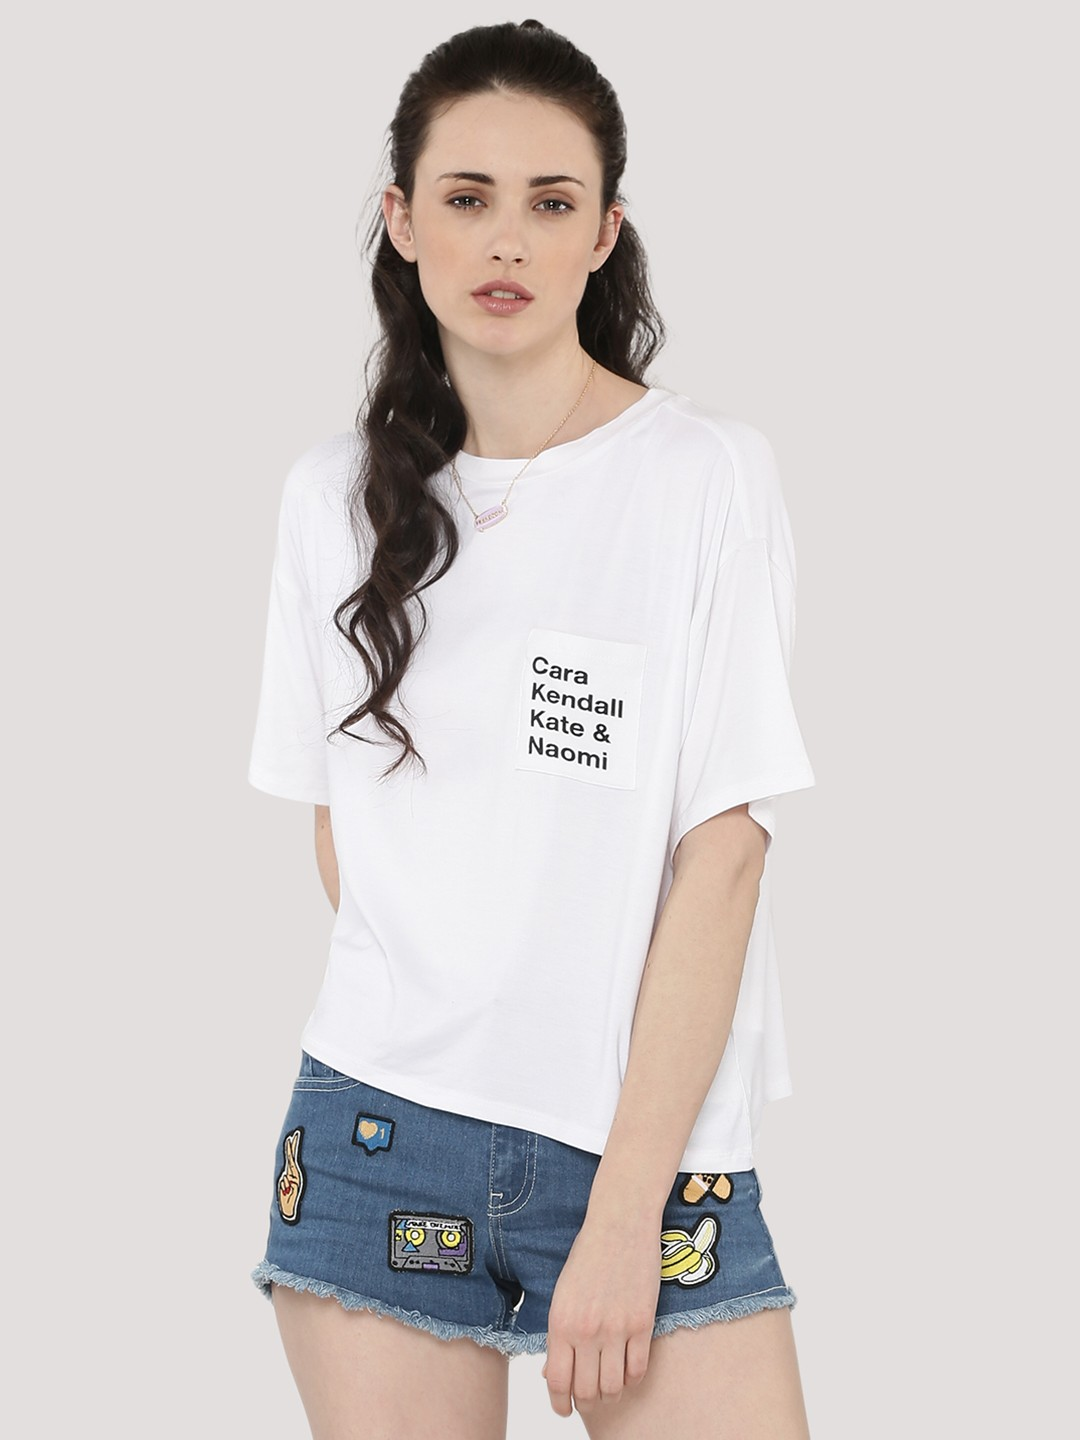 White t shirt for womens - Koovs Text Patch Print T Shirt